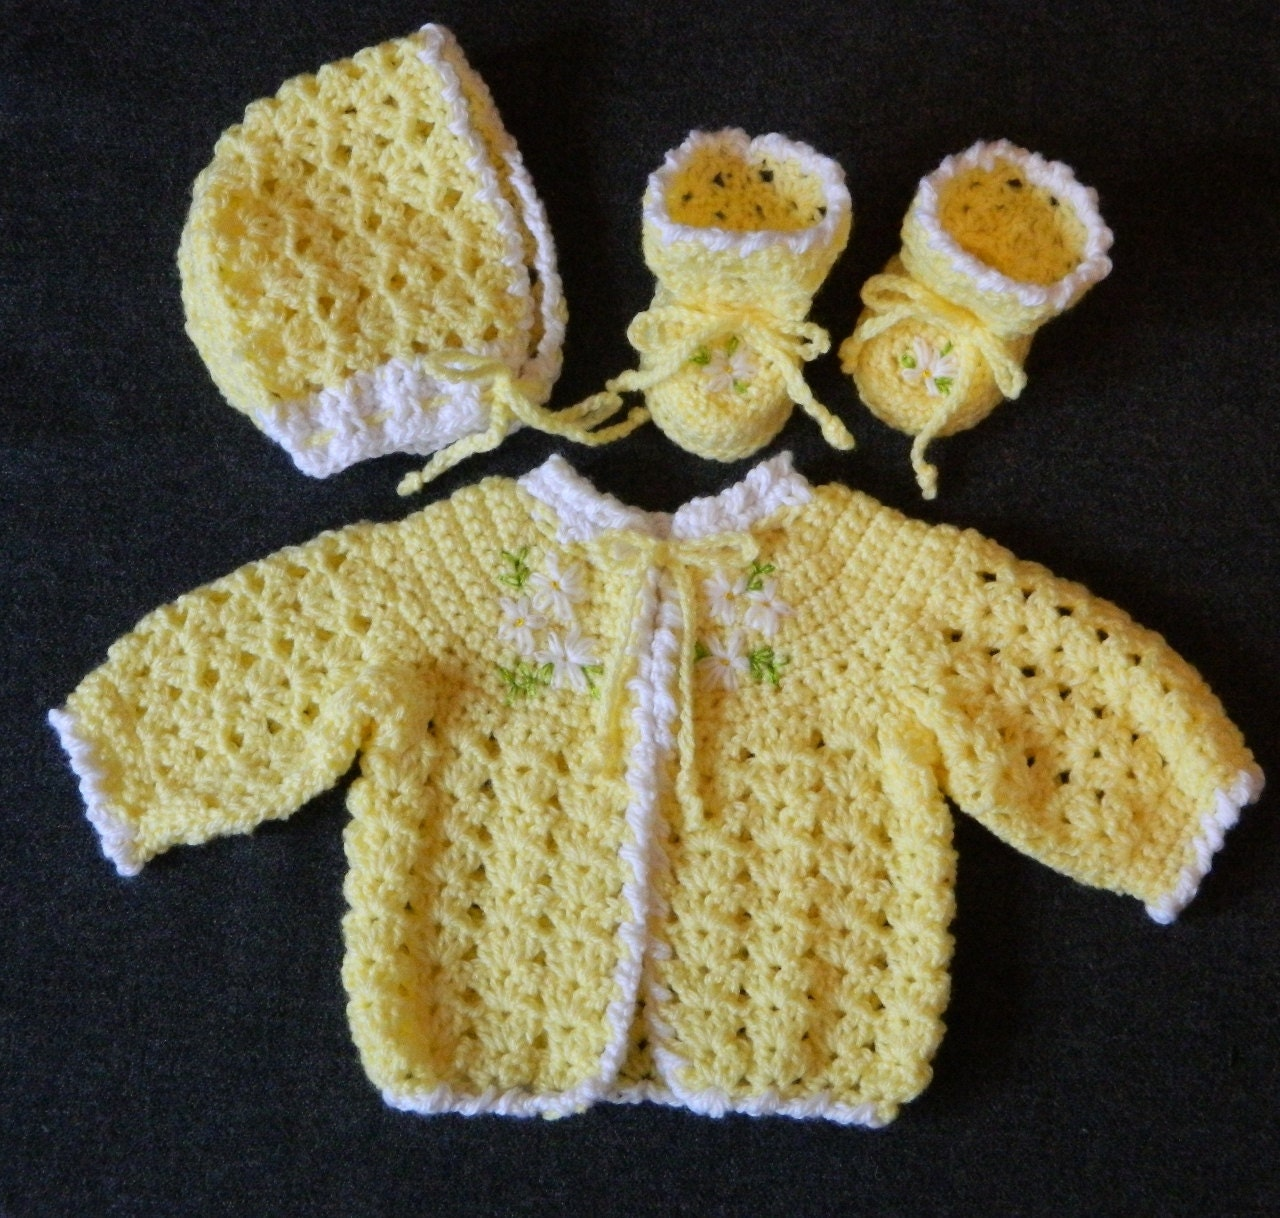 Crochet Baby Bonnet And Booties Pattern : Crochet Baby Sweater Bonnet & Booties Pattern Fits A Small